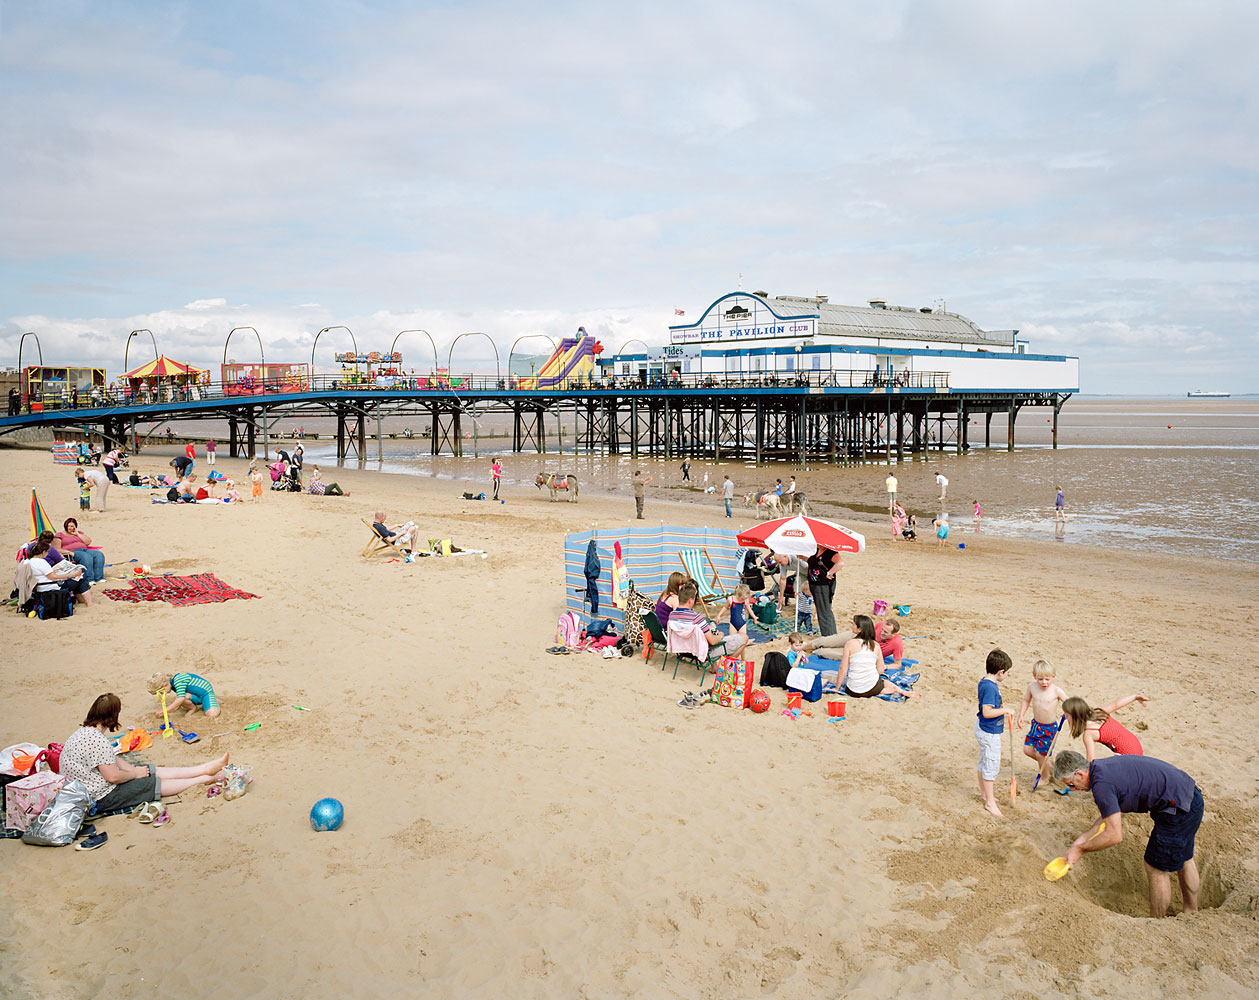 Cleethorpes Pier, North East Lincolnshire, September 2012